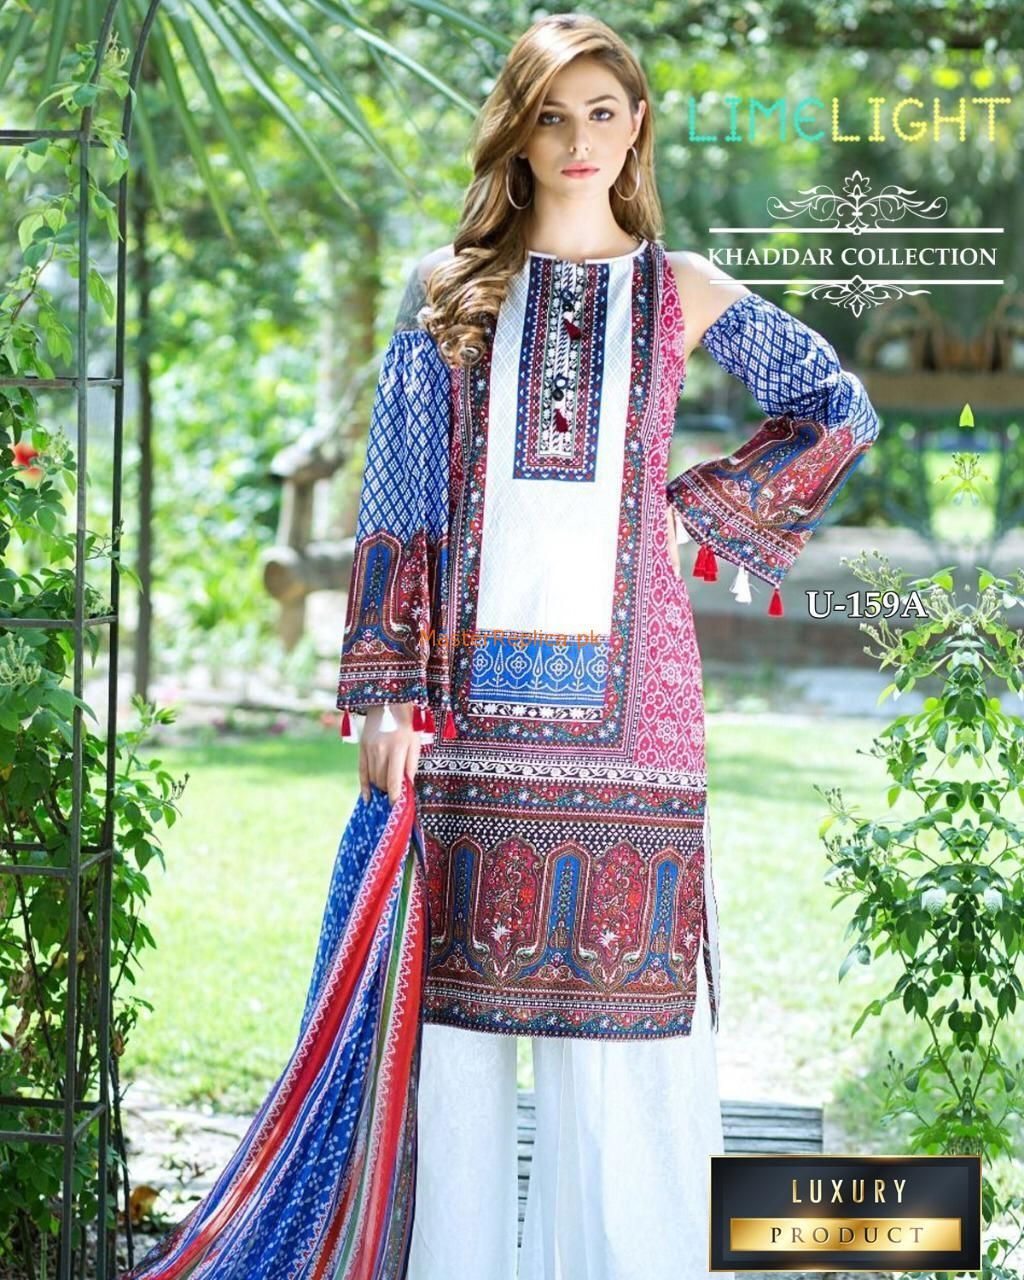 Limelight Luxury Embroidered Winter Khaddar Collection Replica In 2020 New Pakistani Dresses Pakistani Dress Design Pakistani Outfits